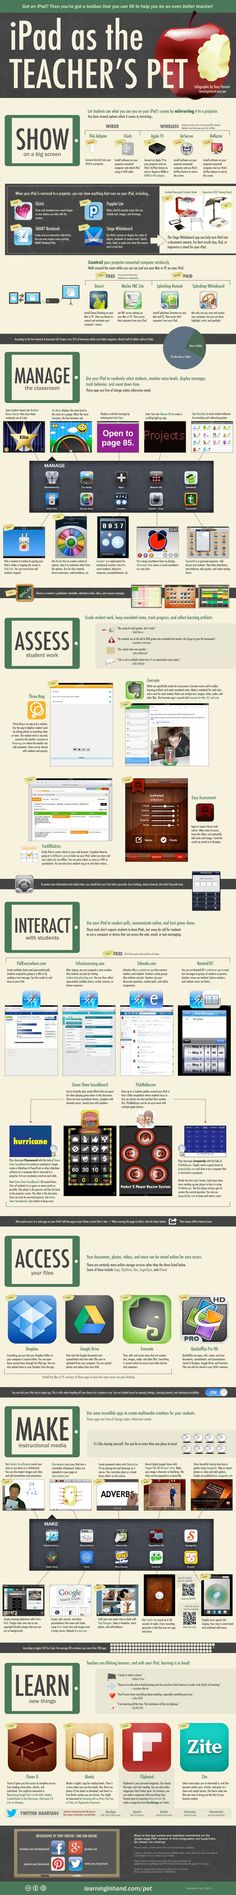 Are you wondering how to best utilize technology in your schooling? This interesting infographic might give you some good ideas. Plus, take a look at some great, educational YouTube channels here: http://knowledgequestmaps.com/blog/2014/03/teaching-with-technology/